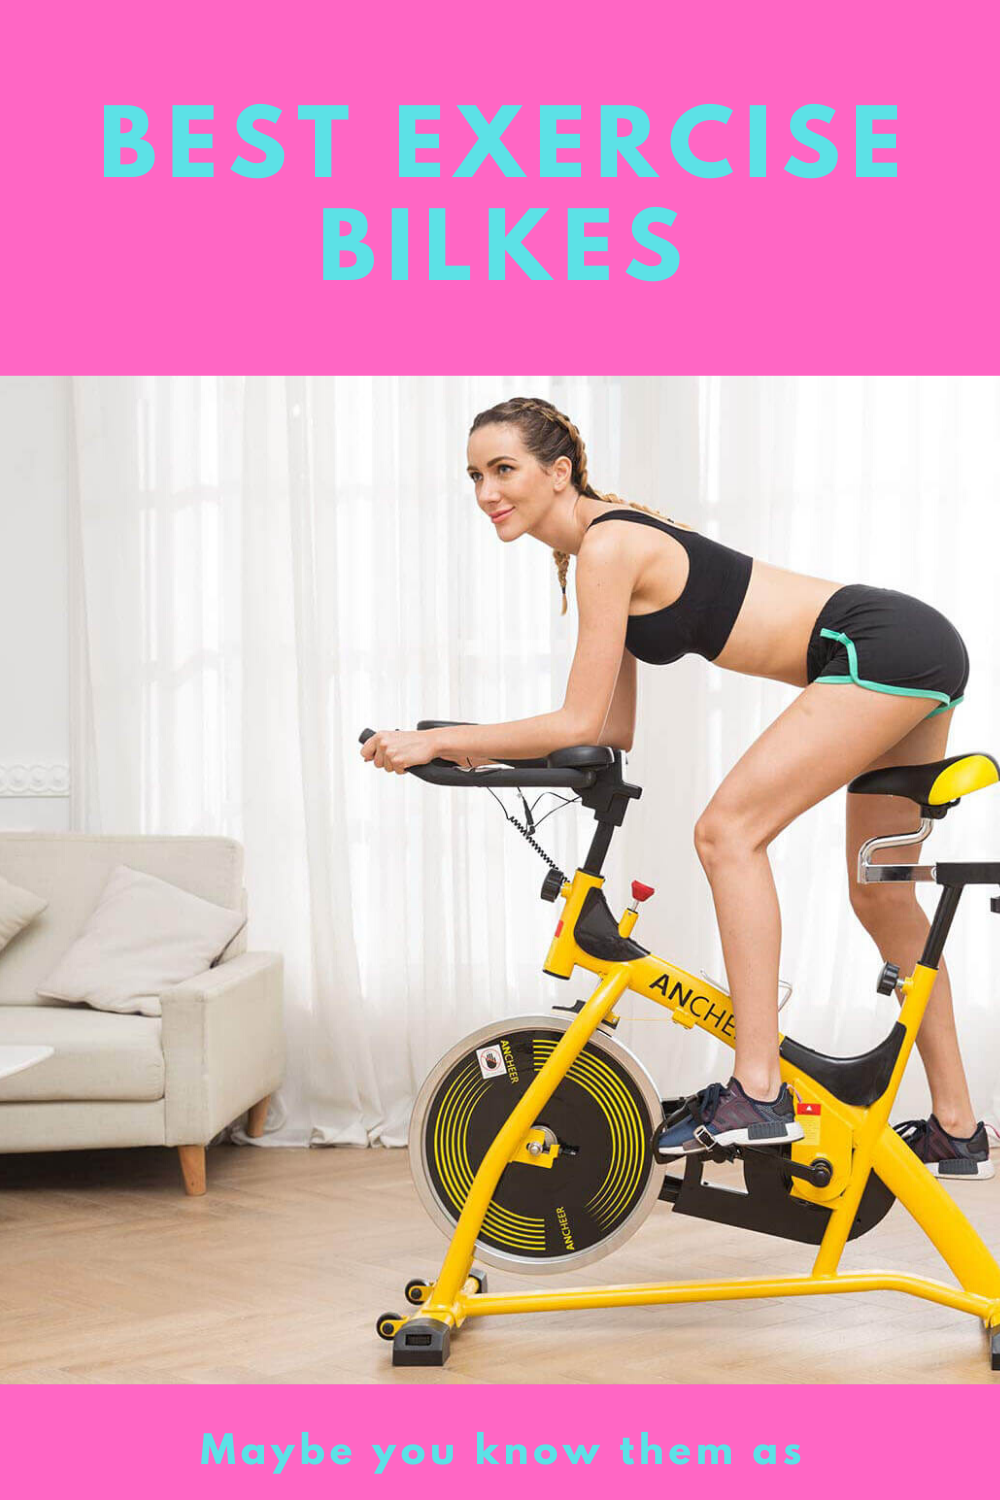 Bicycle Exercise Lose Weight ~ americanclassicnow.com